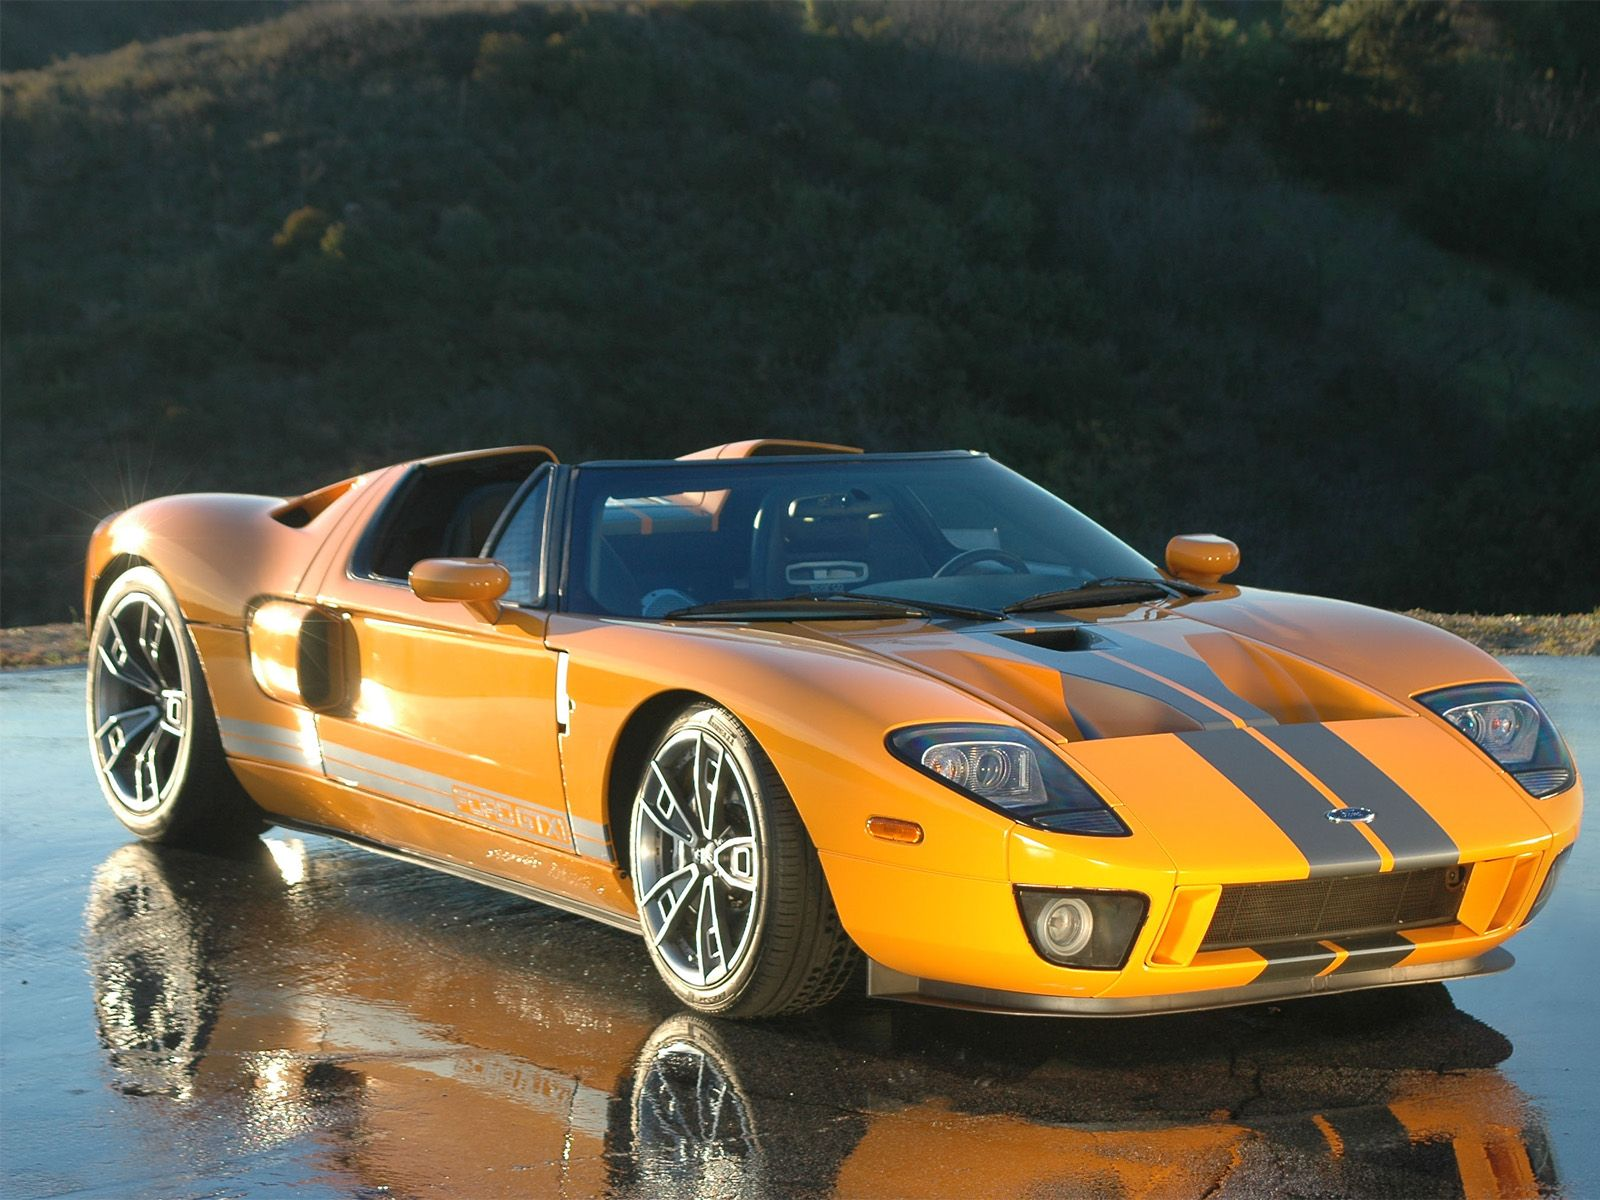 Ford Gt 2005 No Roof Google Search Ford Gt Concept Cars